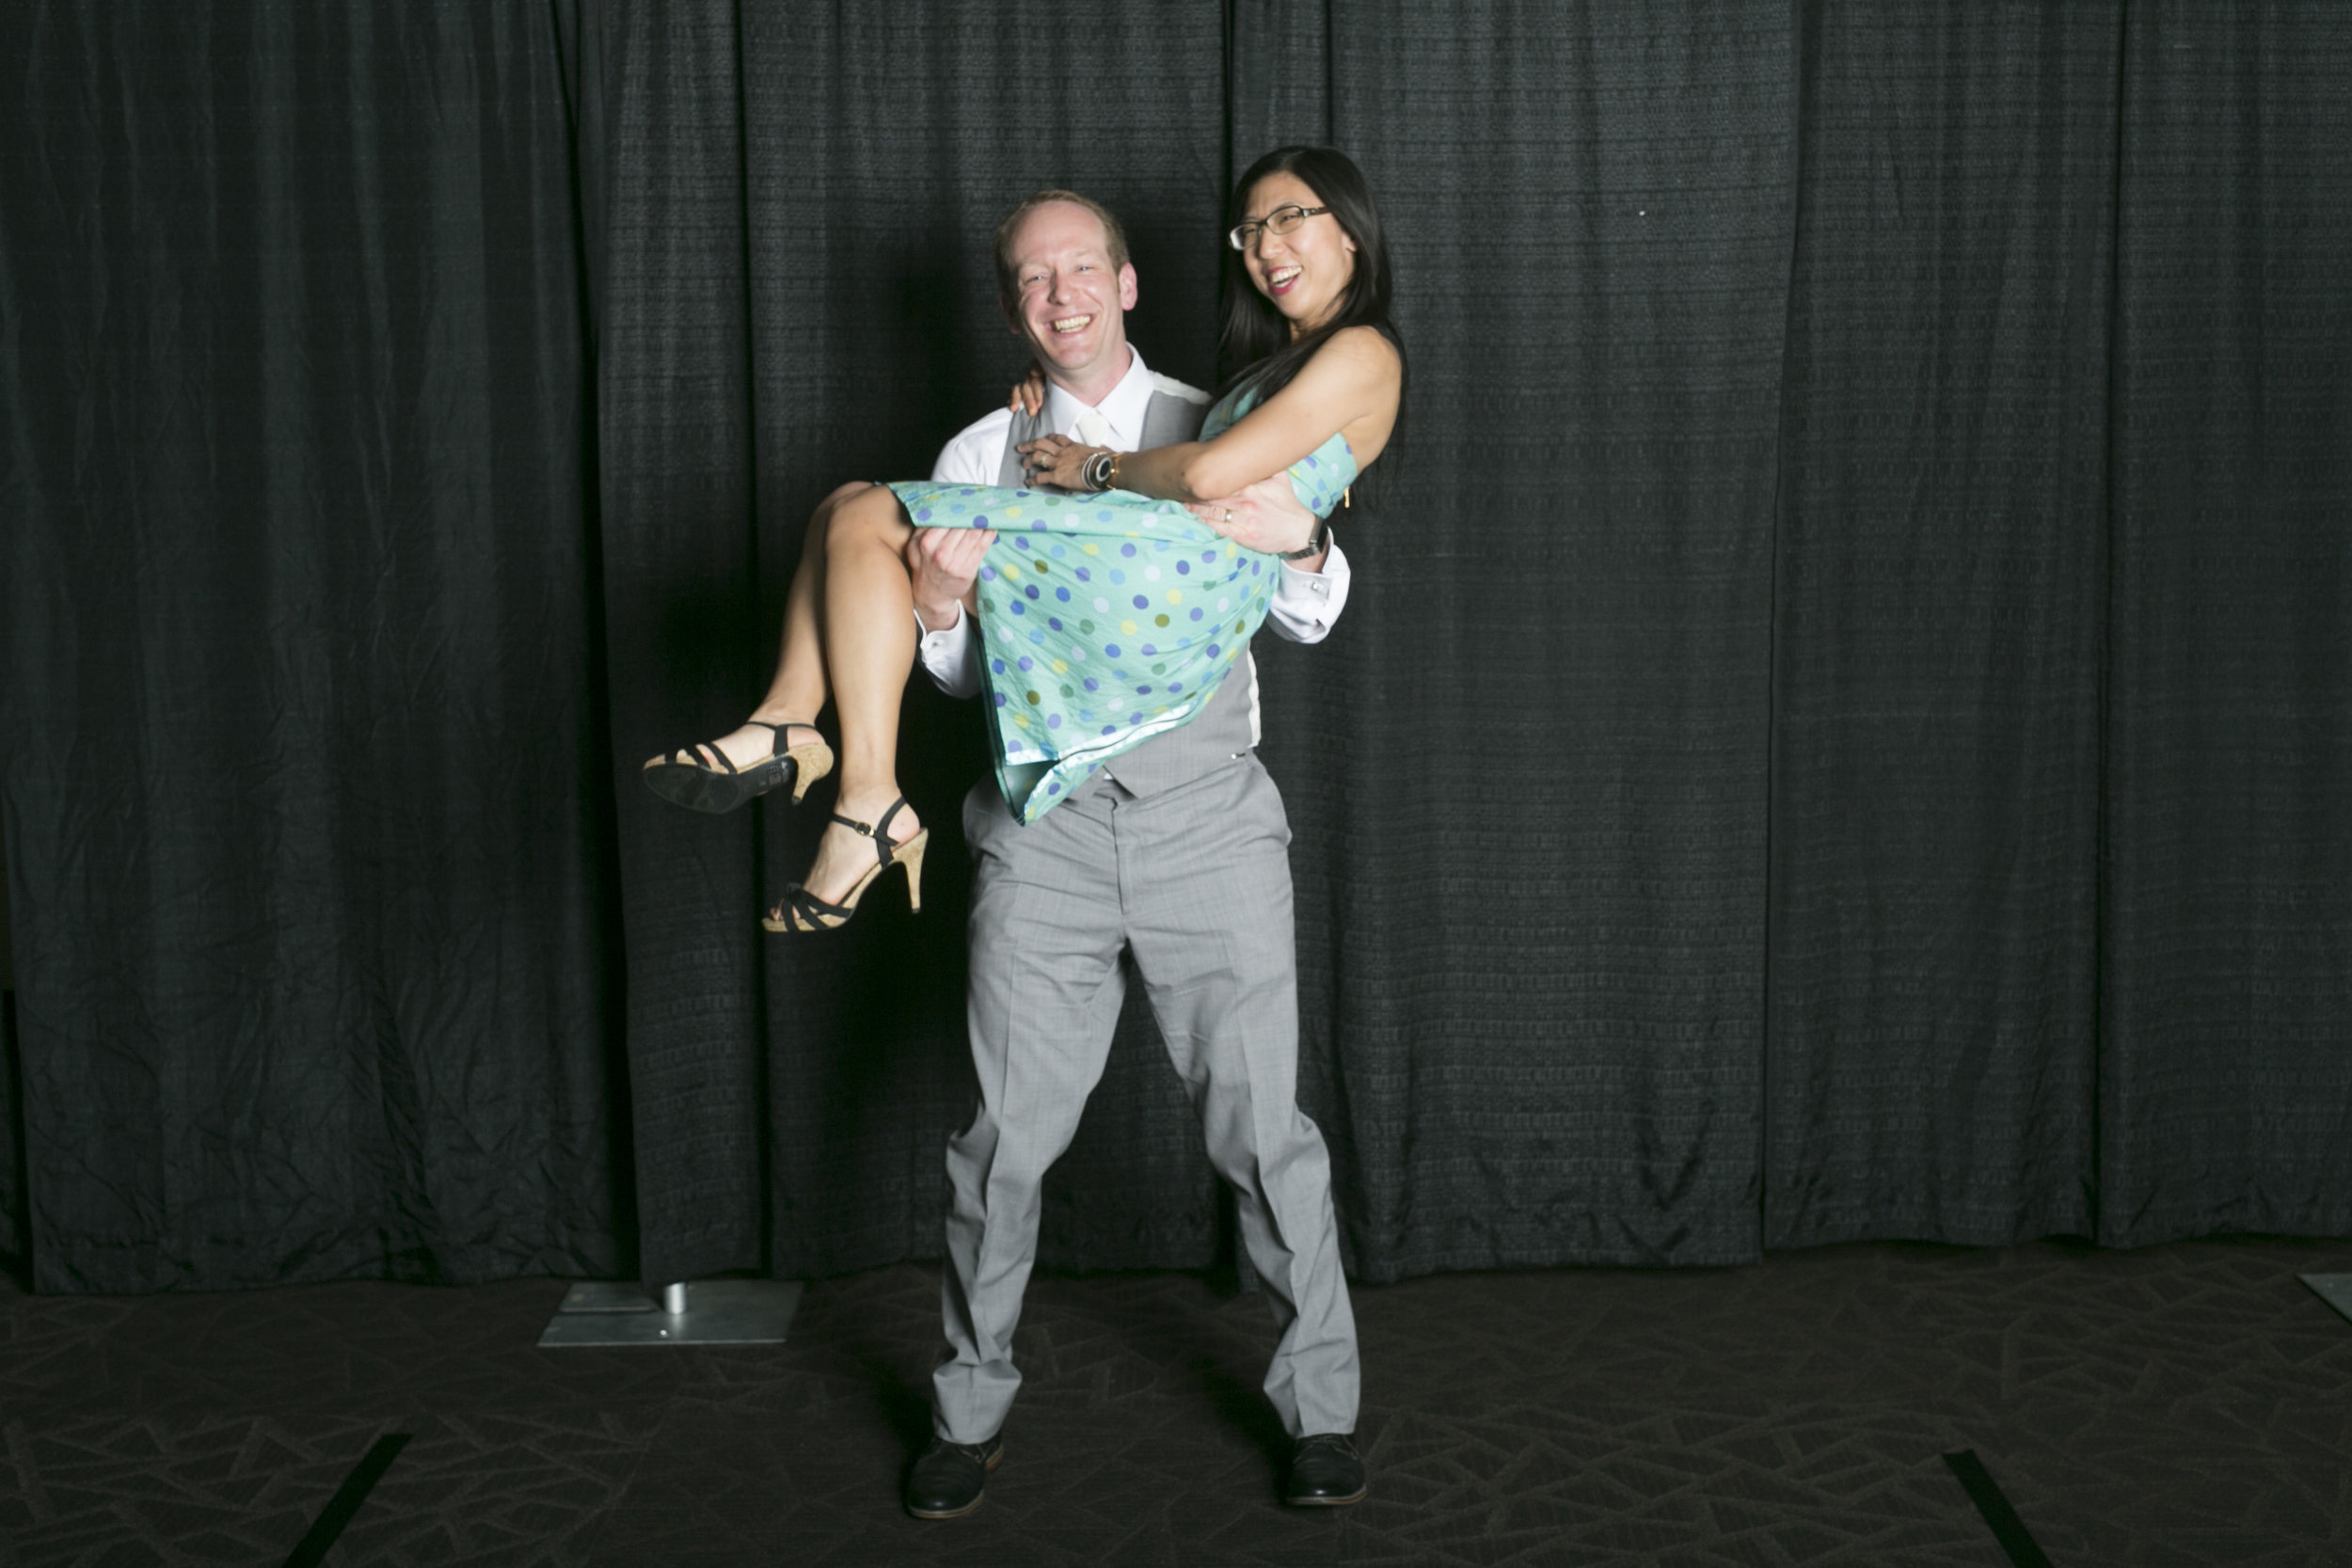 wedding photo booth-45.jpg